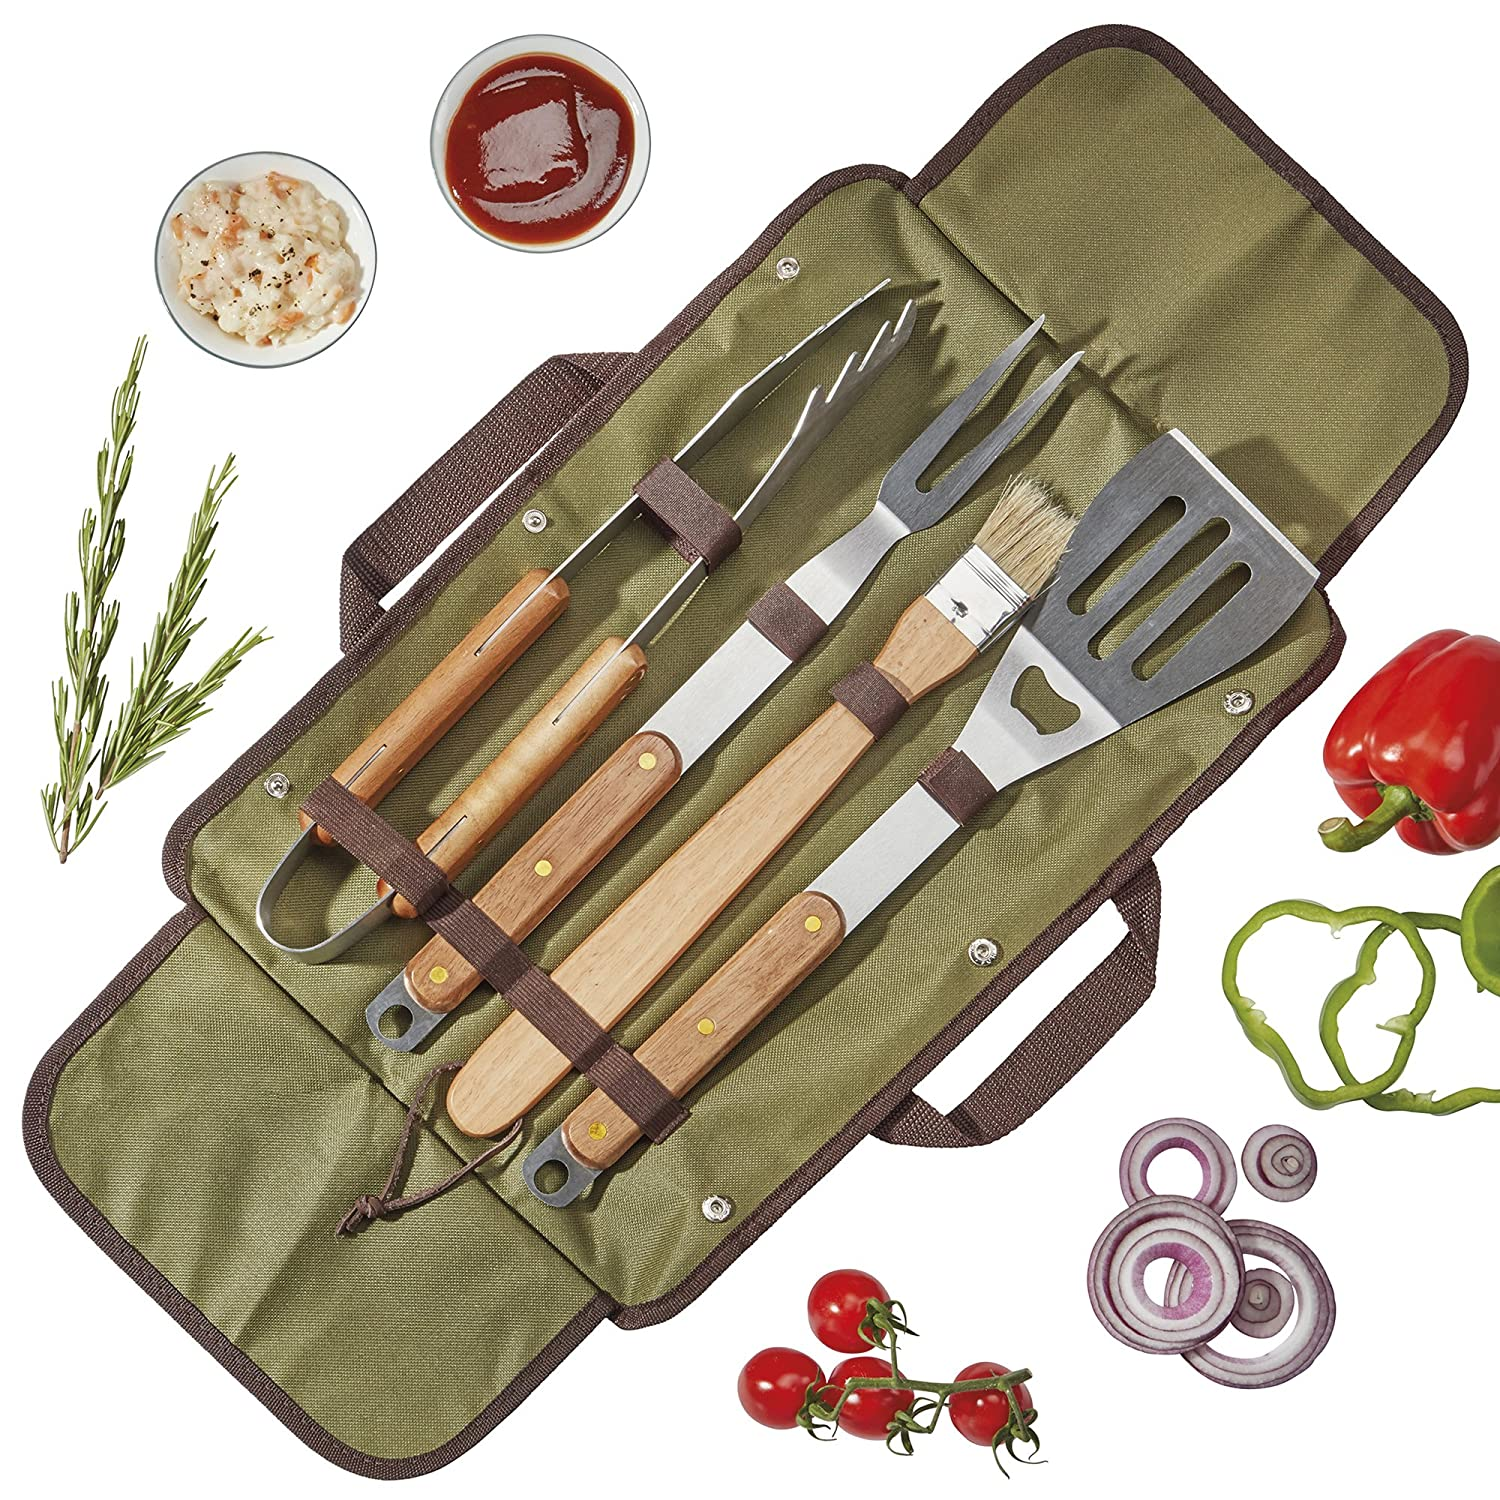 Blaze Box Barbecue Tool Set Cooking Grilling Utensils Stainless Steel and Solid Wood with Carry Bag 5 Pieces Clifford James